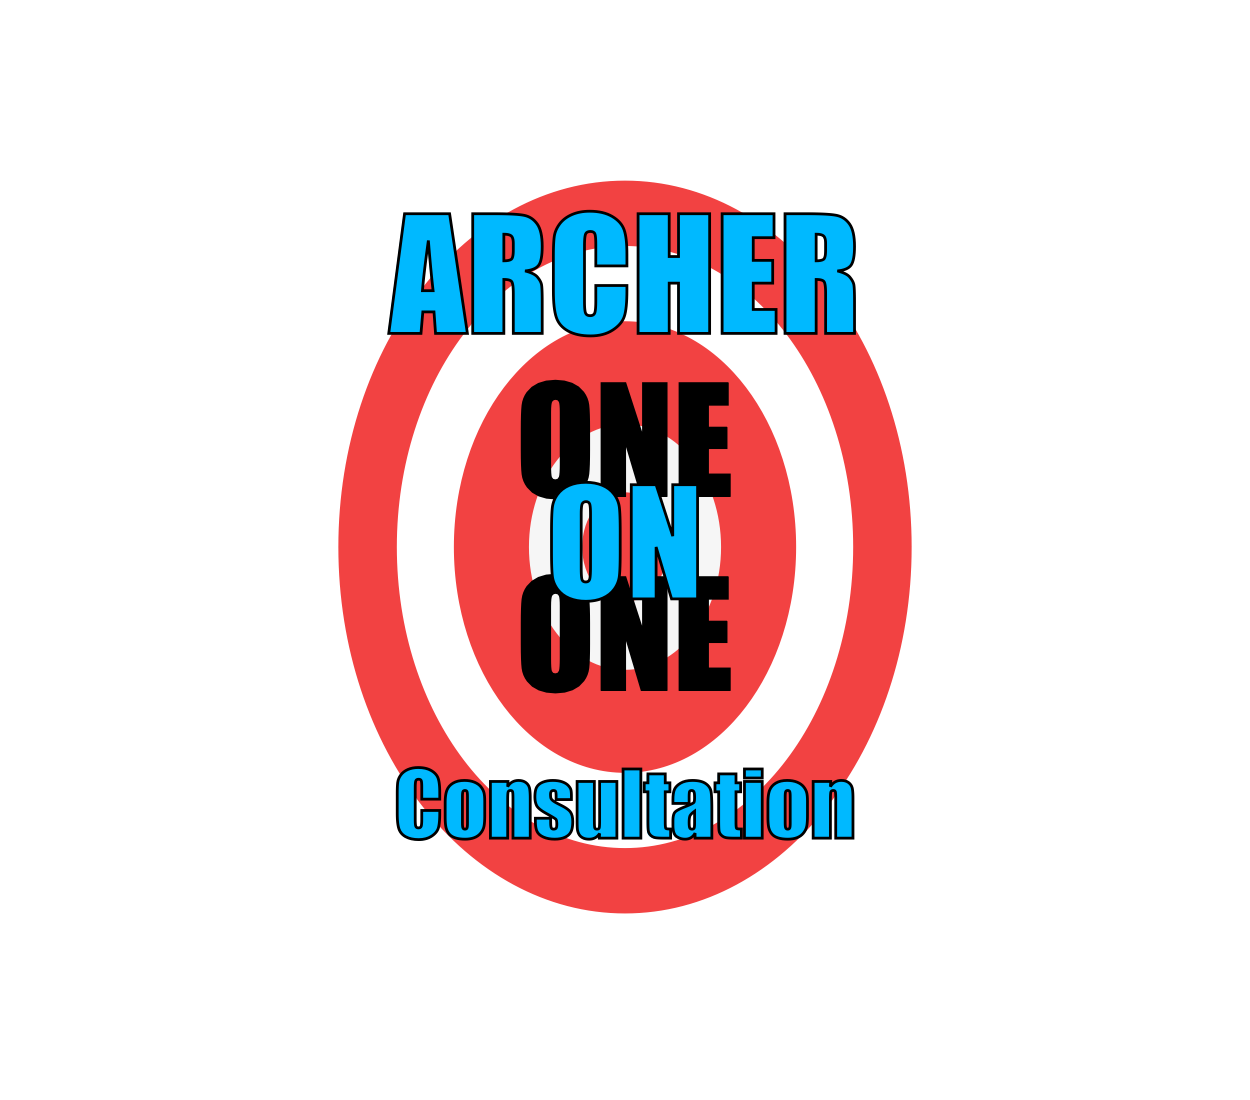 Archer 'One on One' consultation.